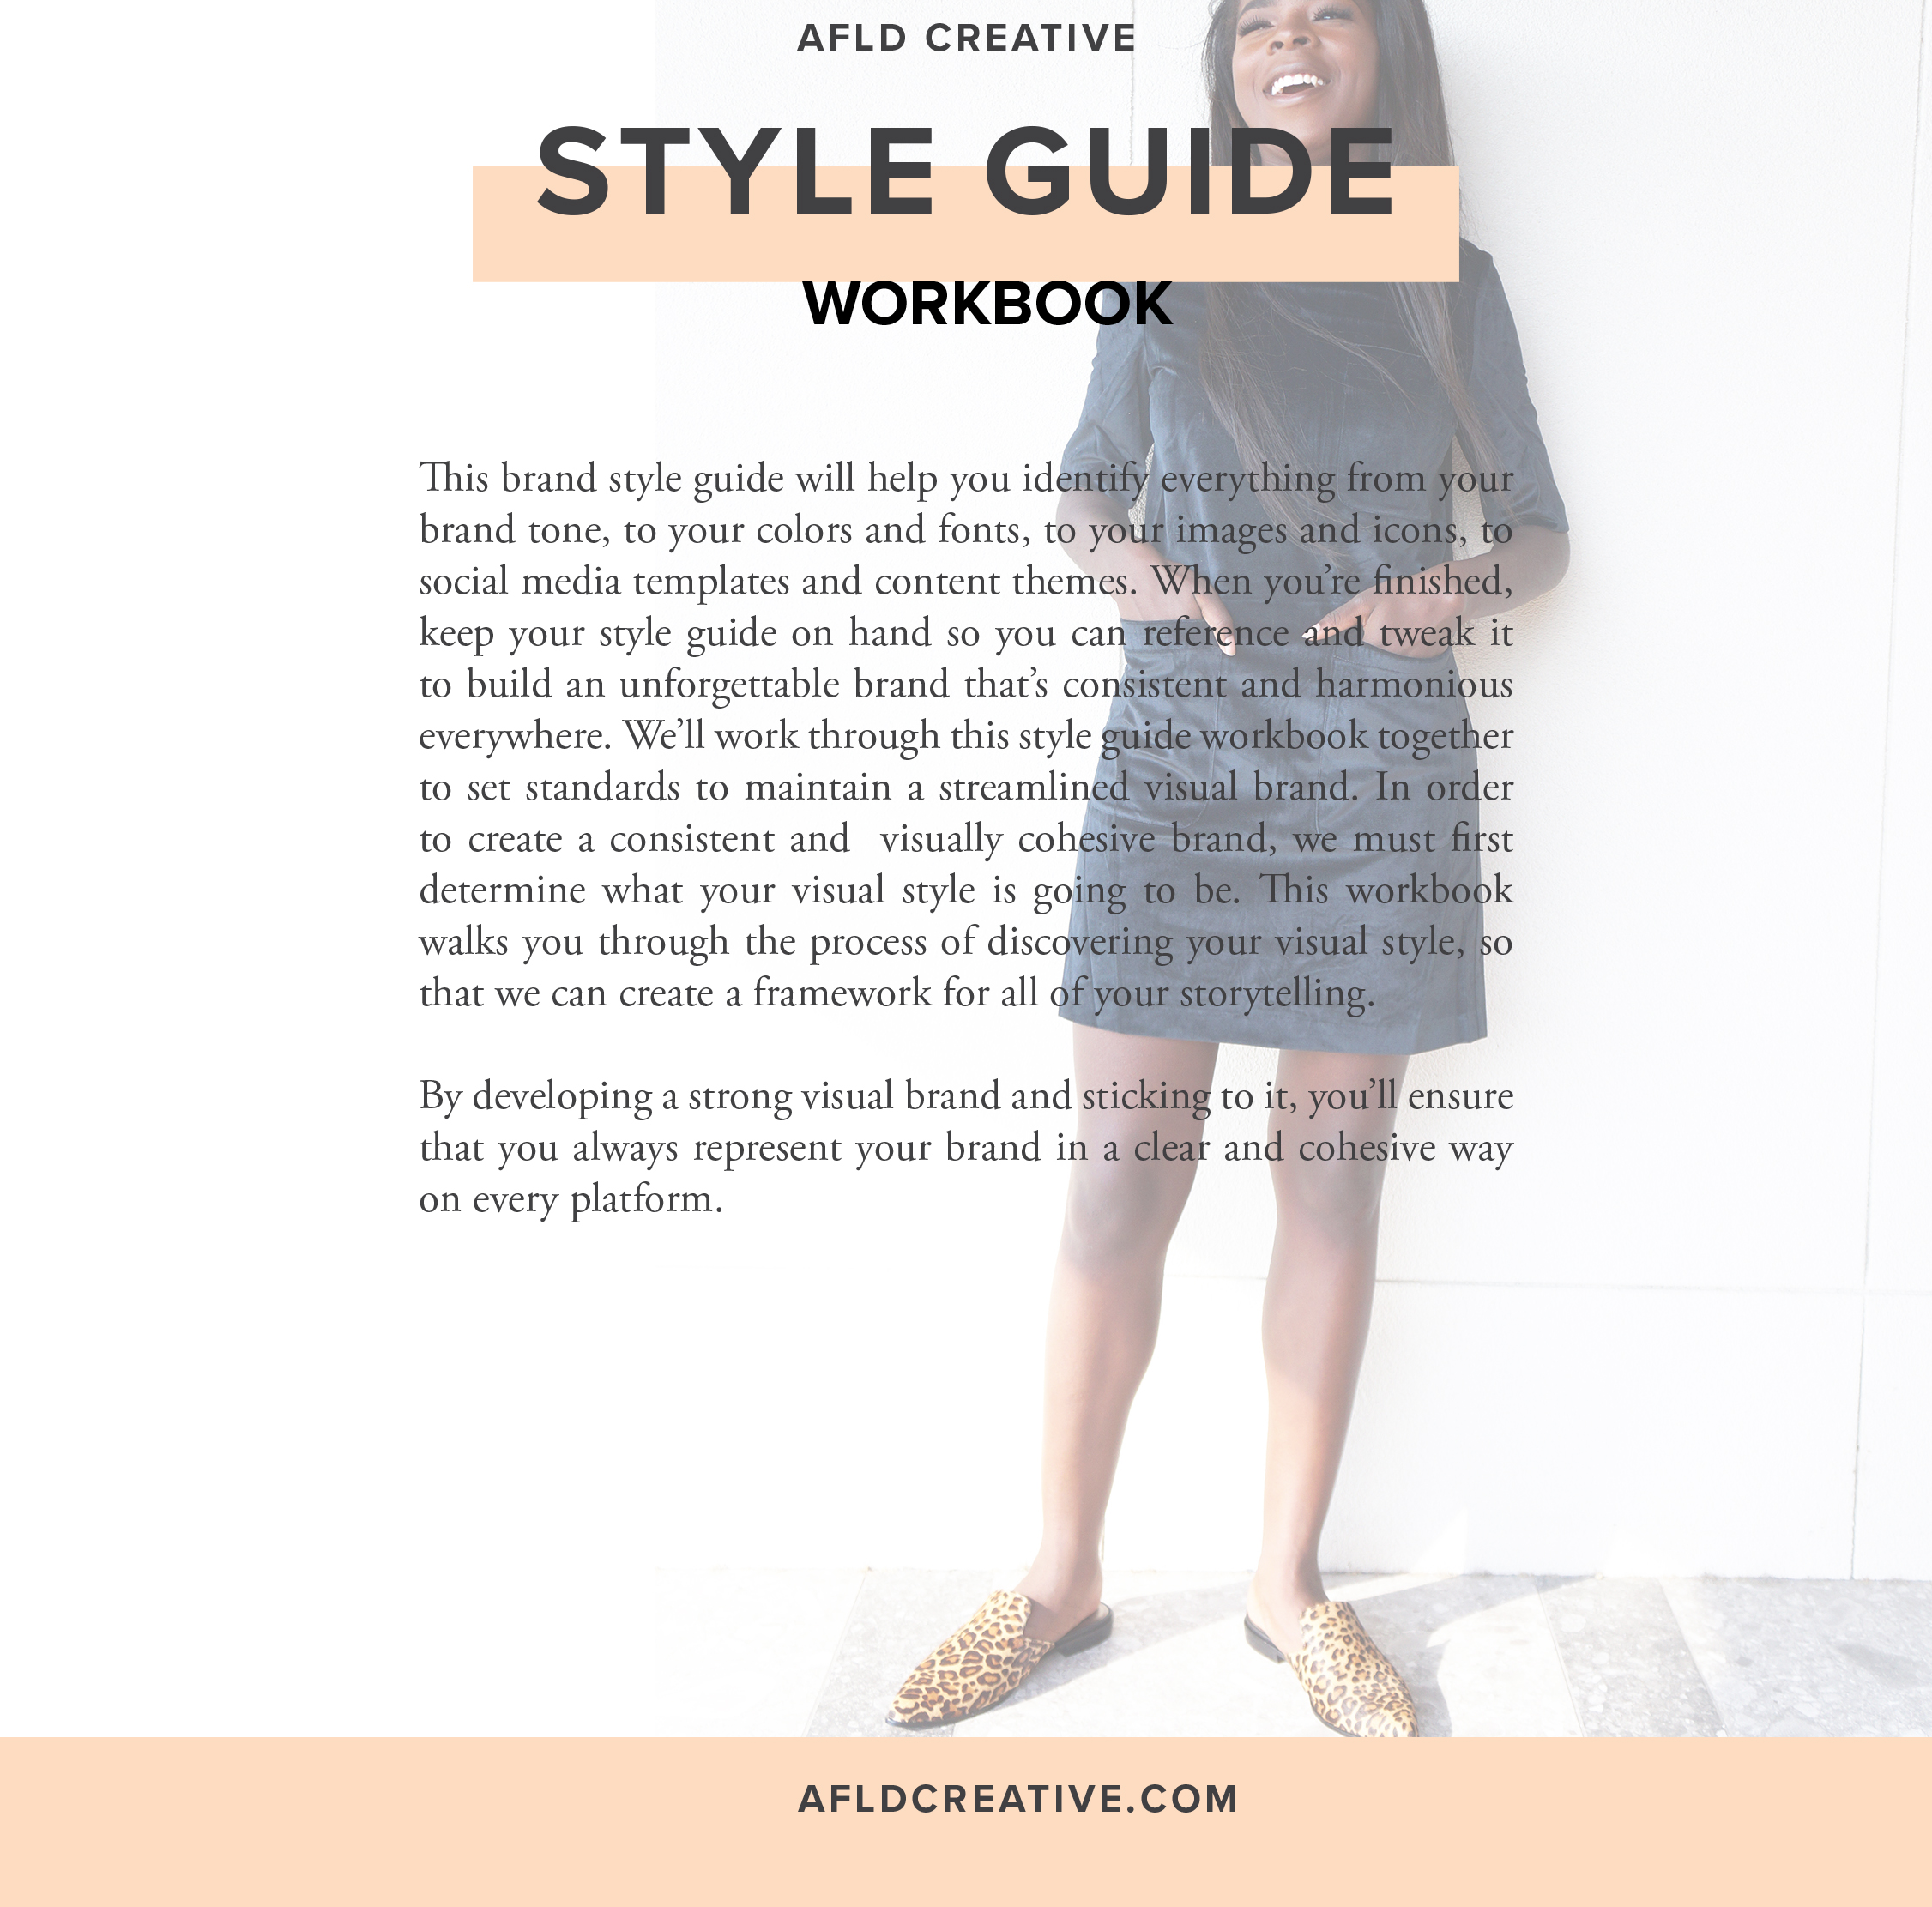 Andrea Fenise Memphis Fashion Blogger shares how to build your own personal brand